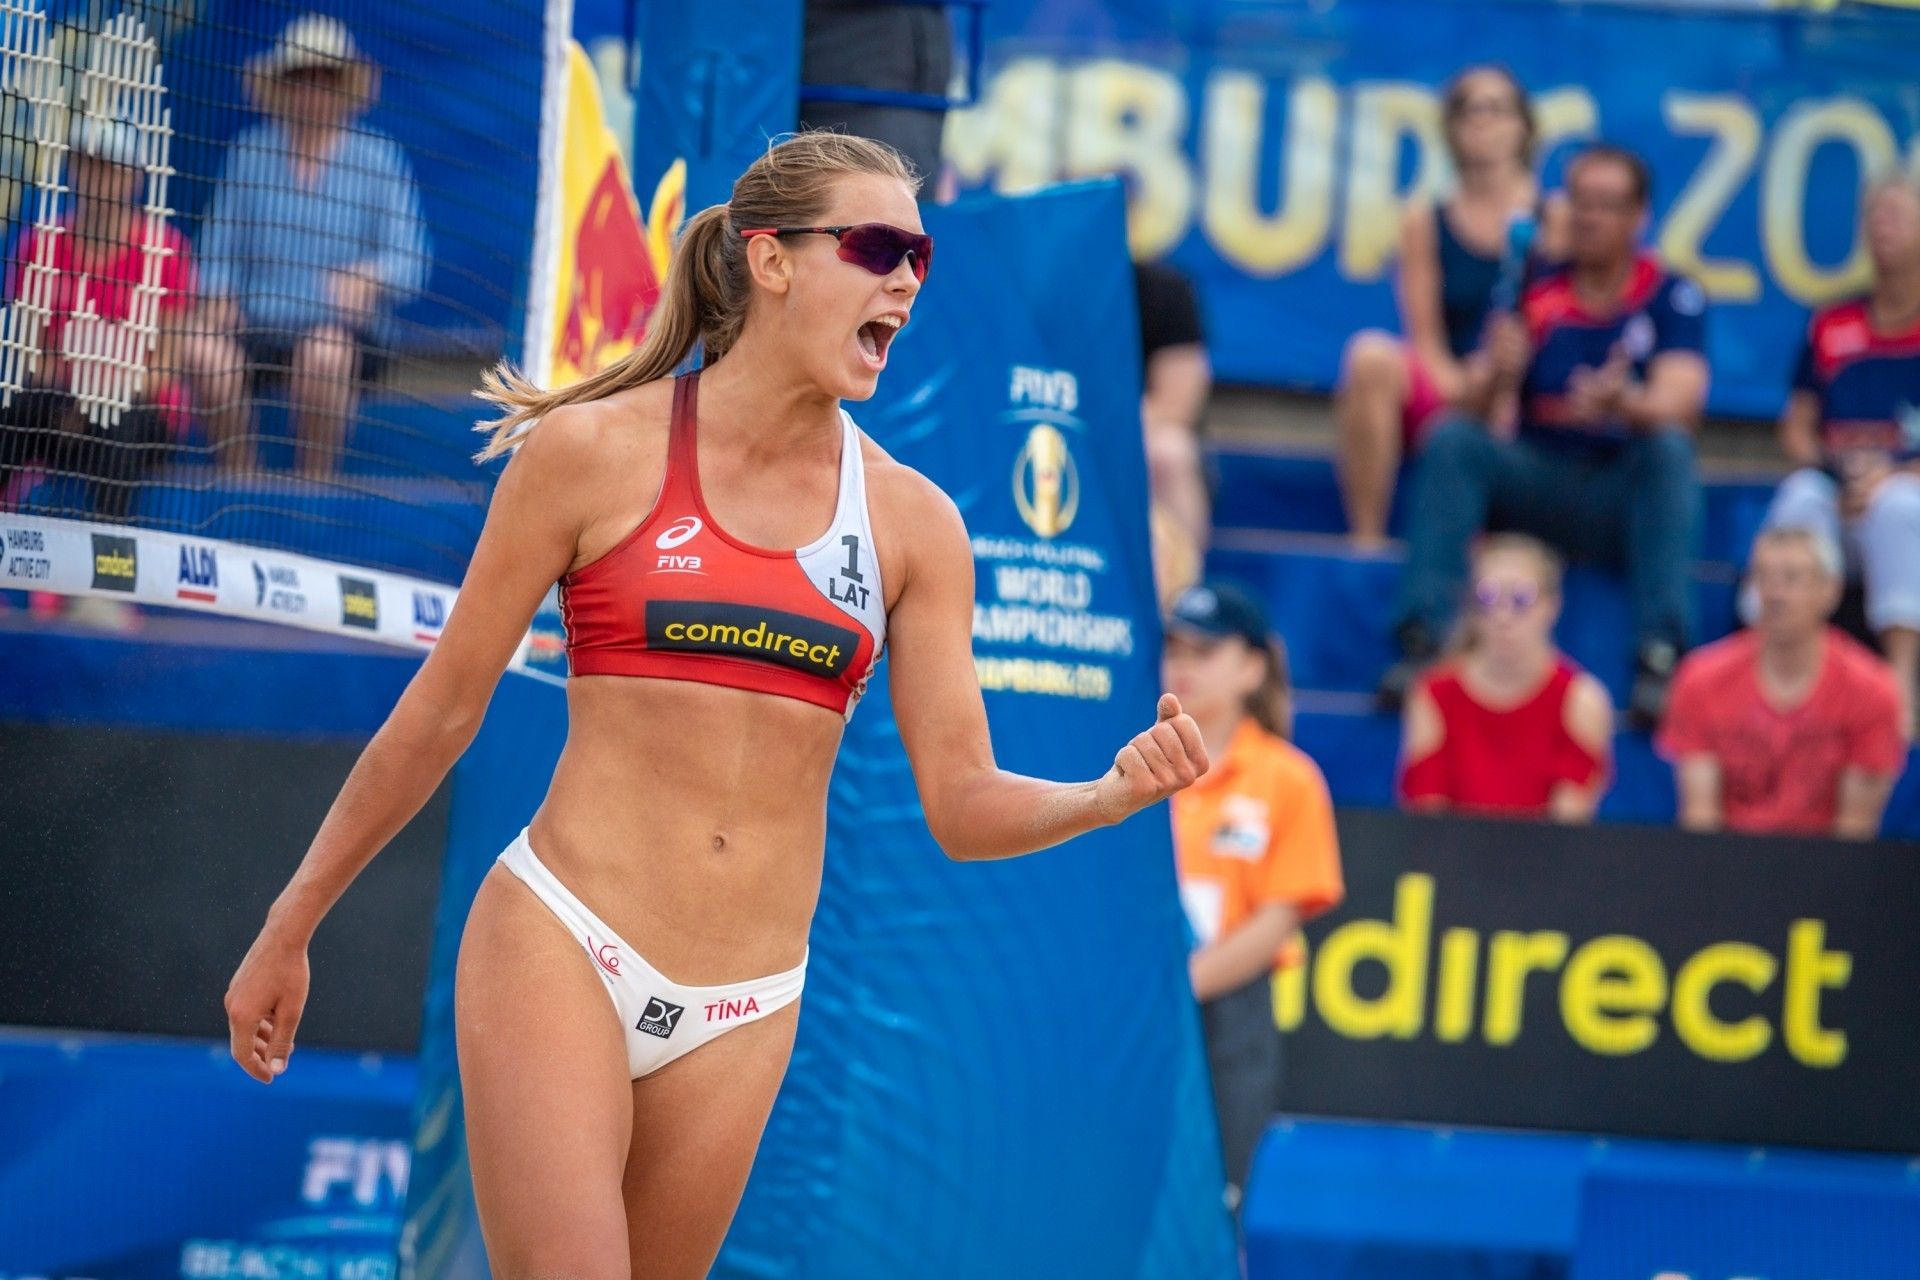 A rising star in the World Tour, Graudina plays for USC in the United States